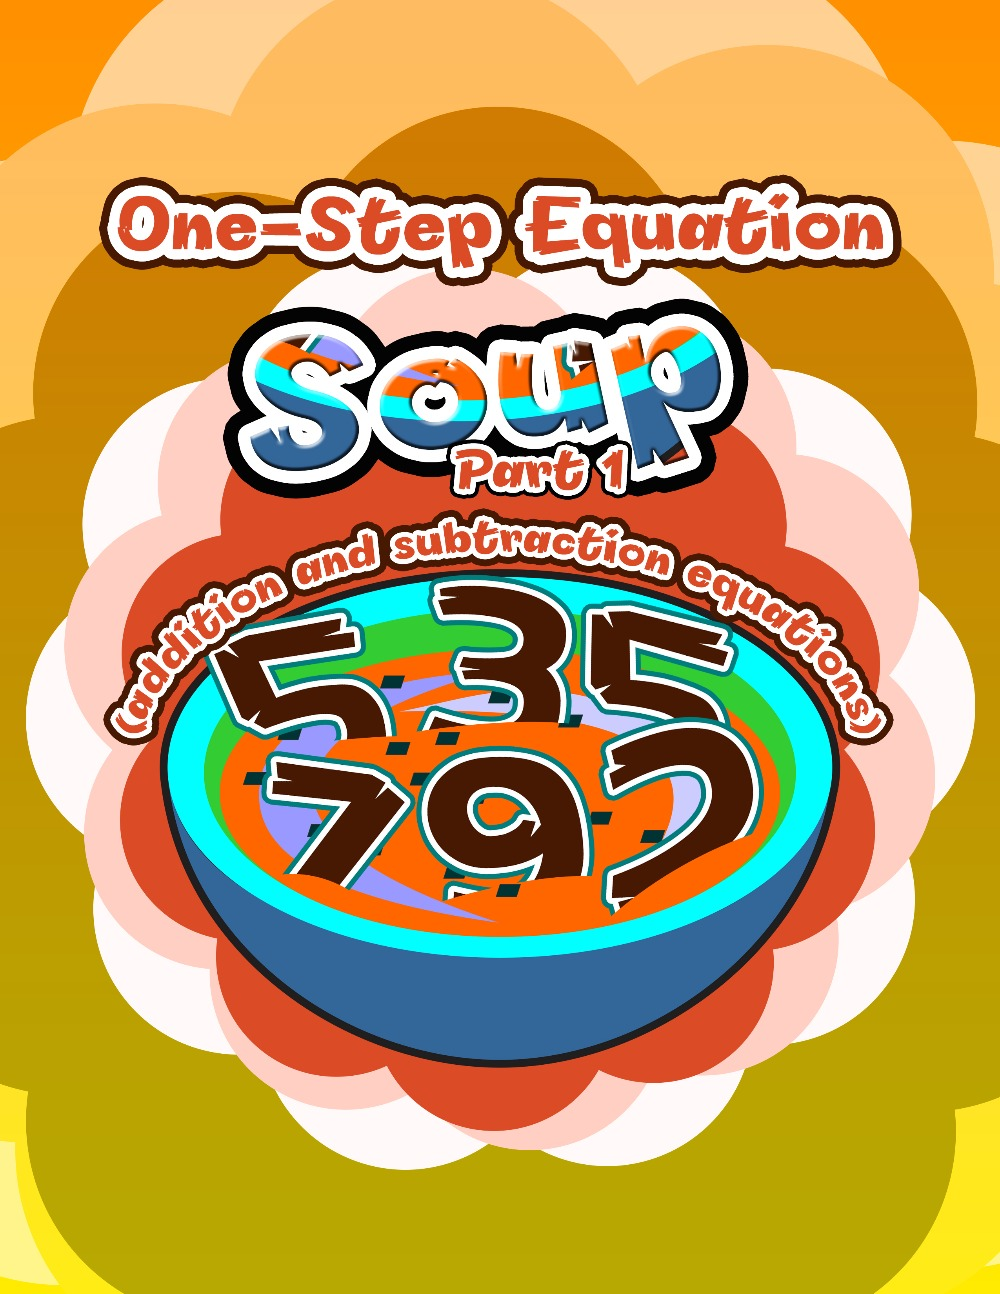 One-Step Equation Soup, Part 1